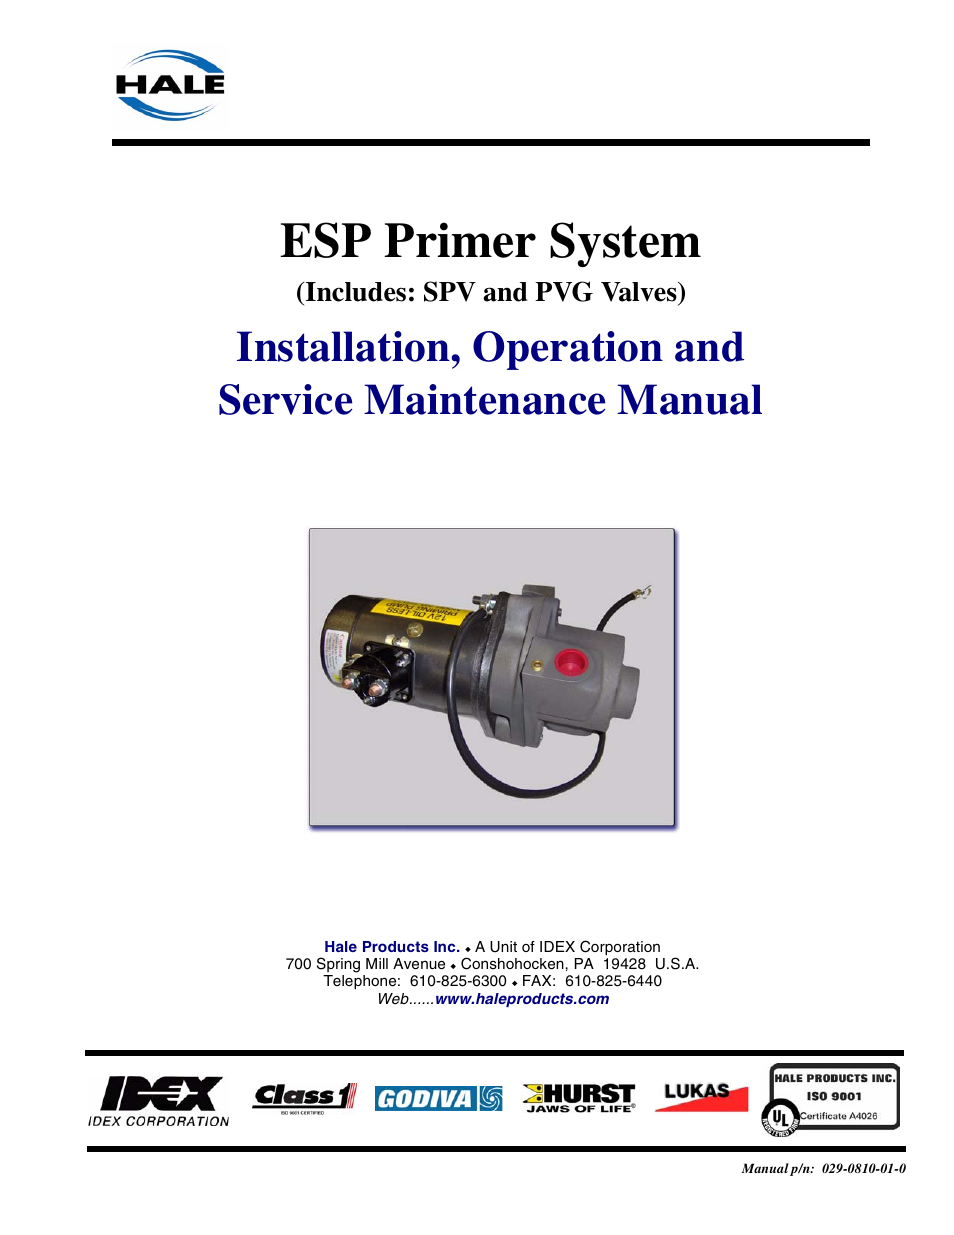 Hale Primer Pump Diagram Wiring Will Be A Thing Komatsu Fg30 Forklift Esp Priming System User Manual 70 Pages Rh Manualsdir Com Parts